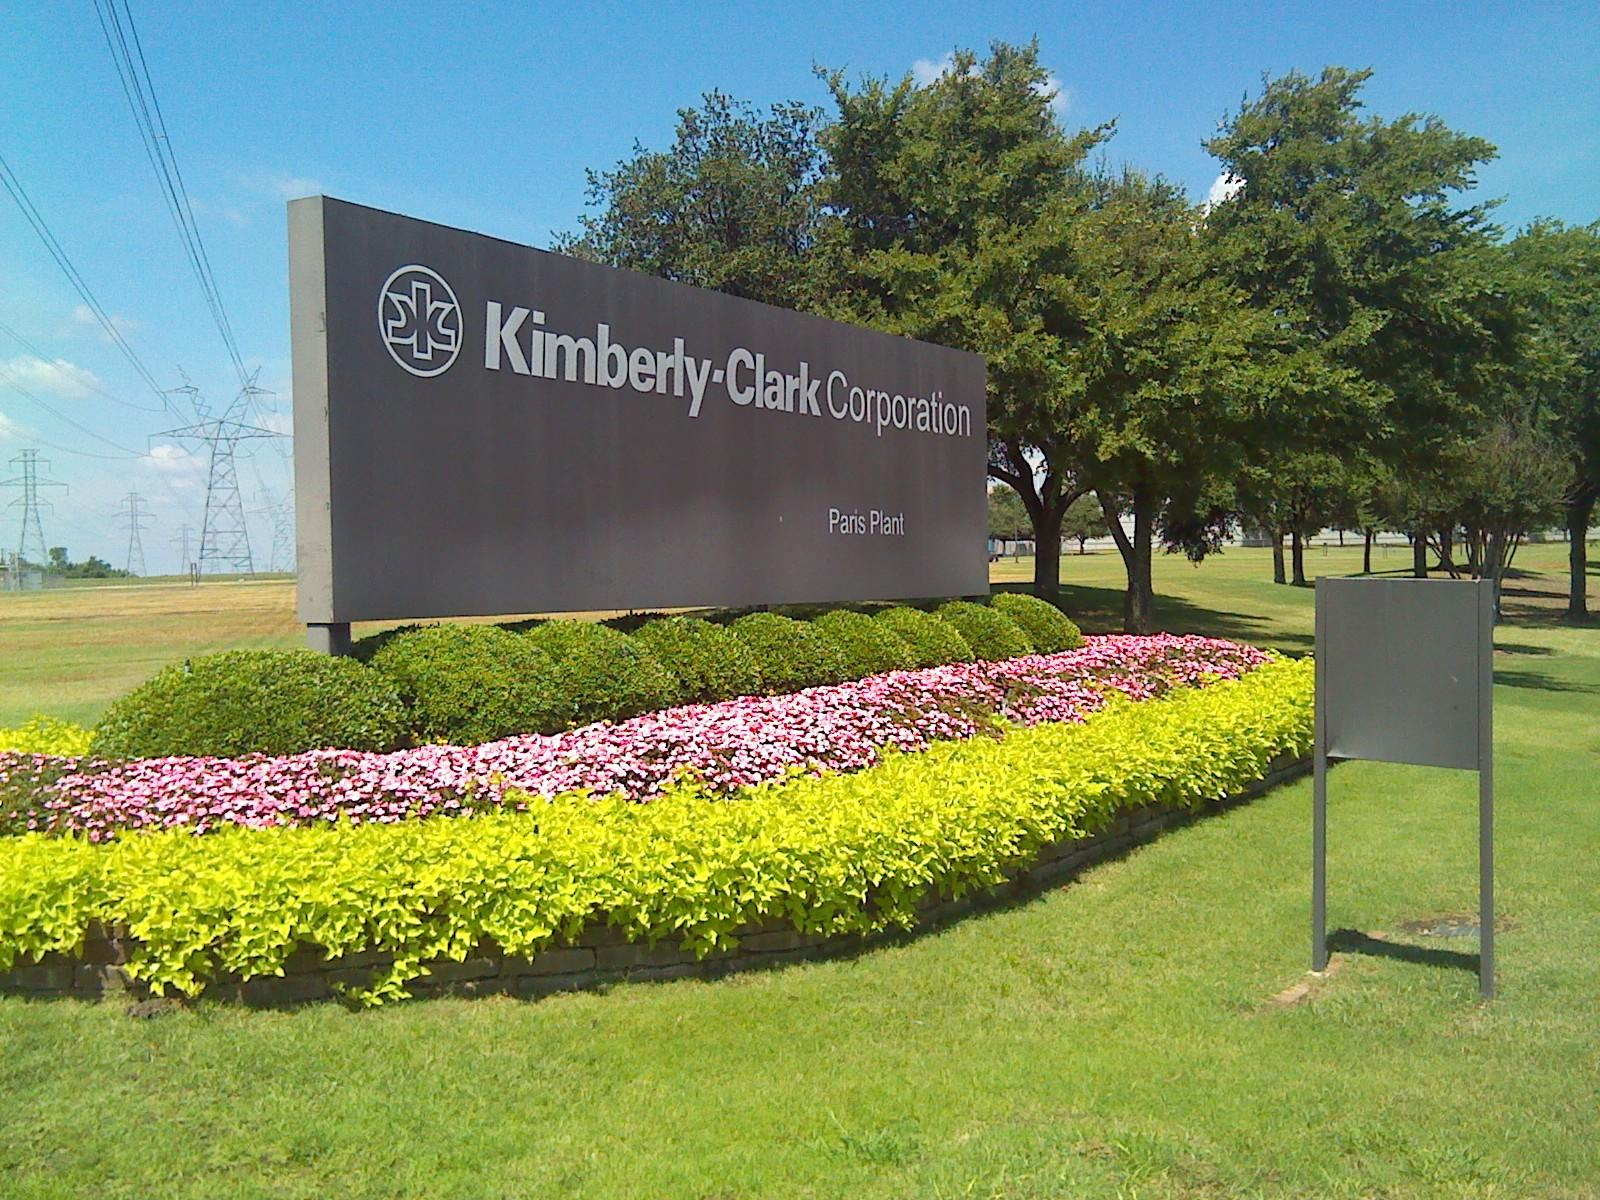 Rational Advisors LLC Sells 2350 Shares of Kimberly Clark Corp (KMB)